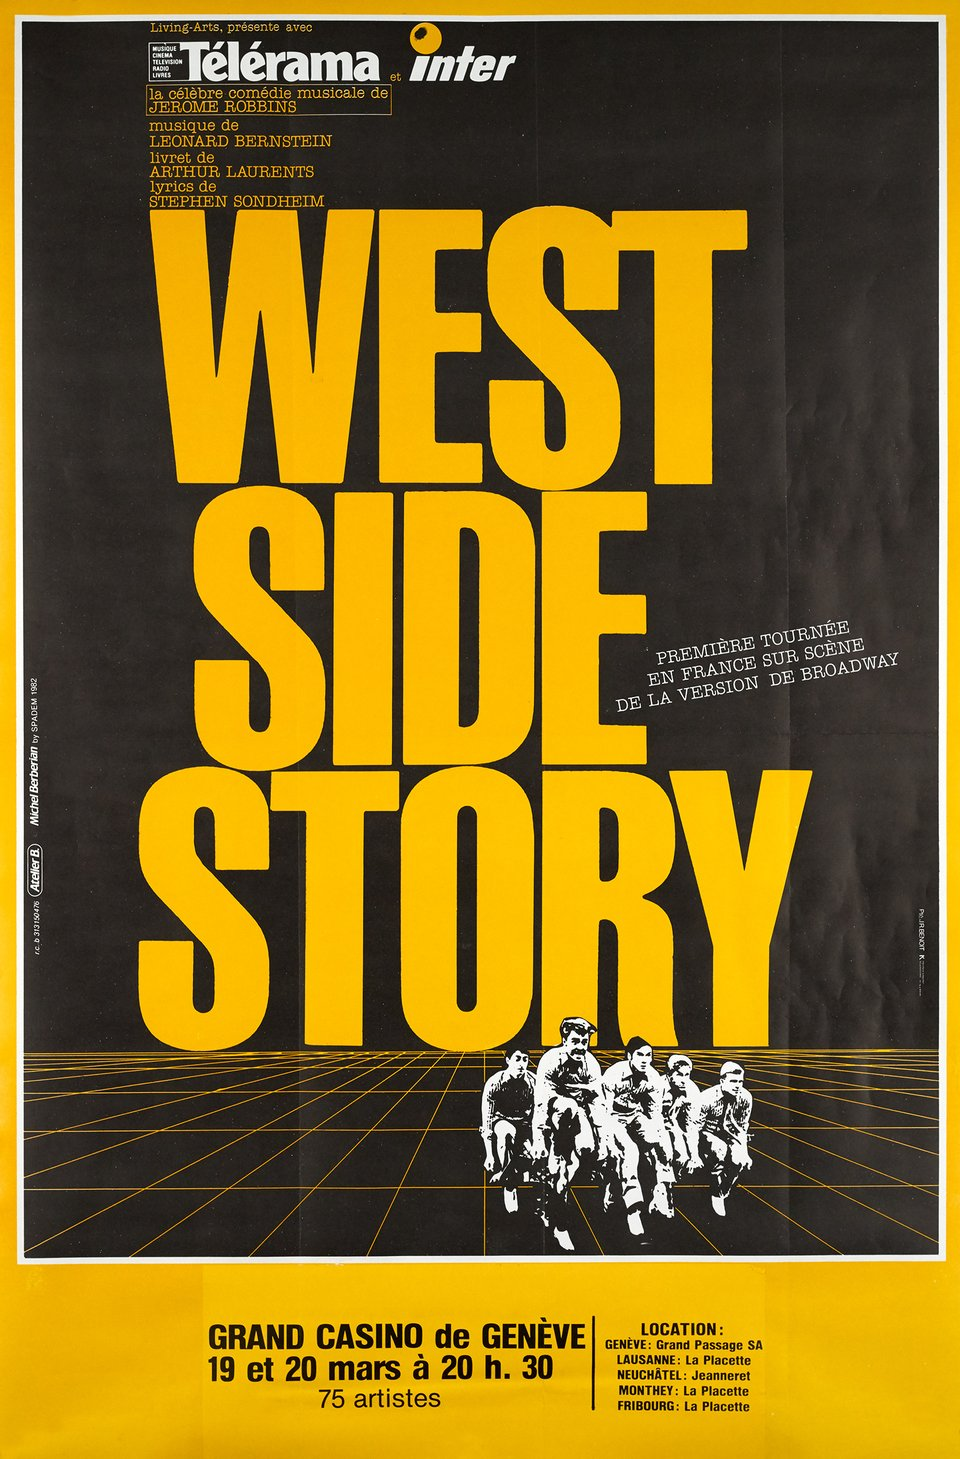 West Side Story, Grand Casino de Genève – Affiche ancienne – J.R BENOIT – 1982